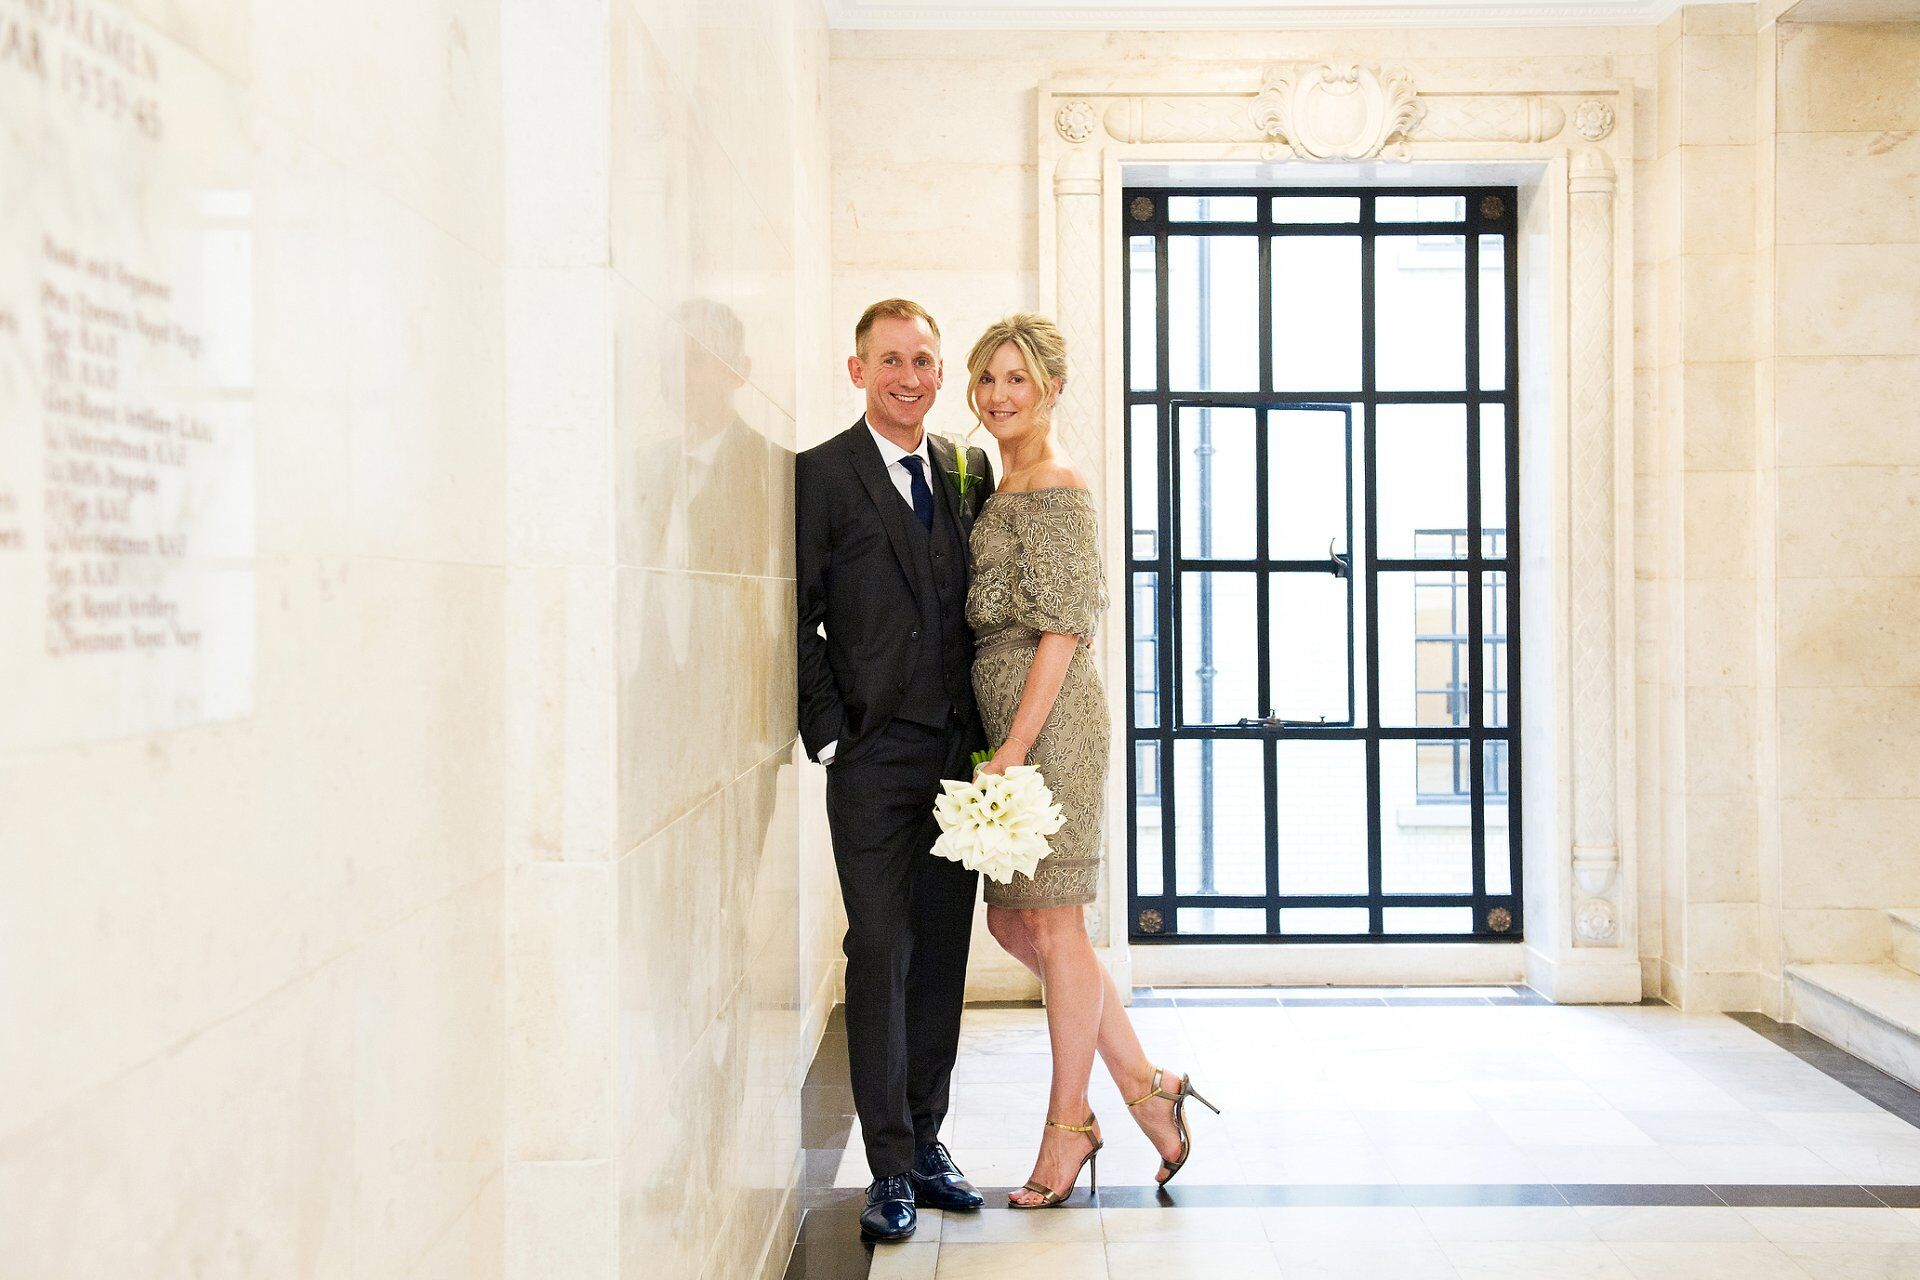 a stylish bride and groom pose on the mezzanine level by marylebone registry office wedding photographer emma duggan